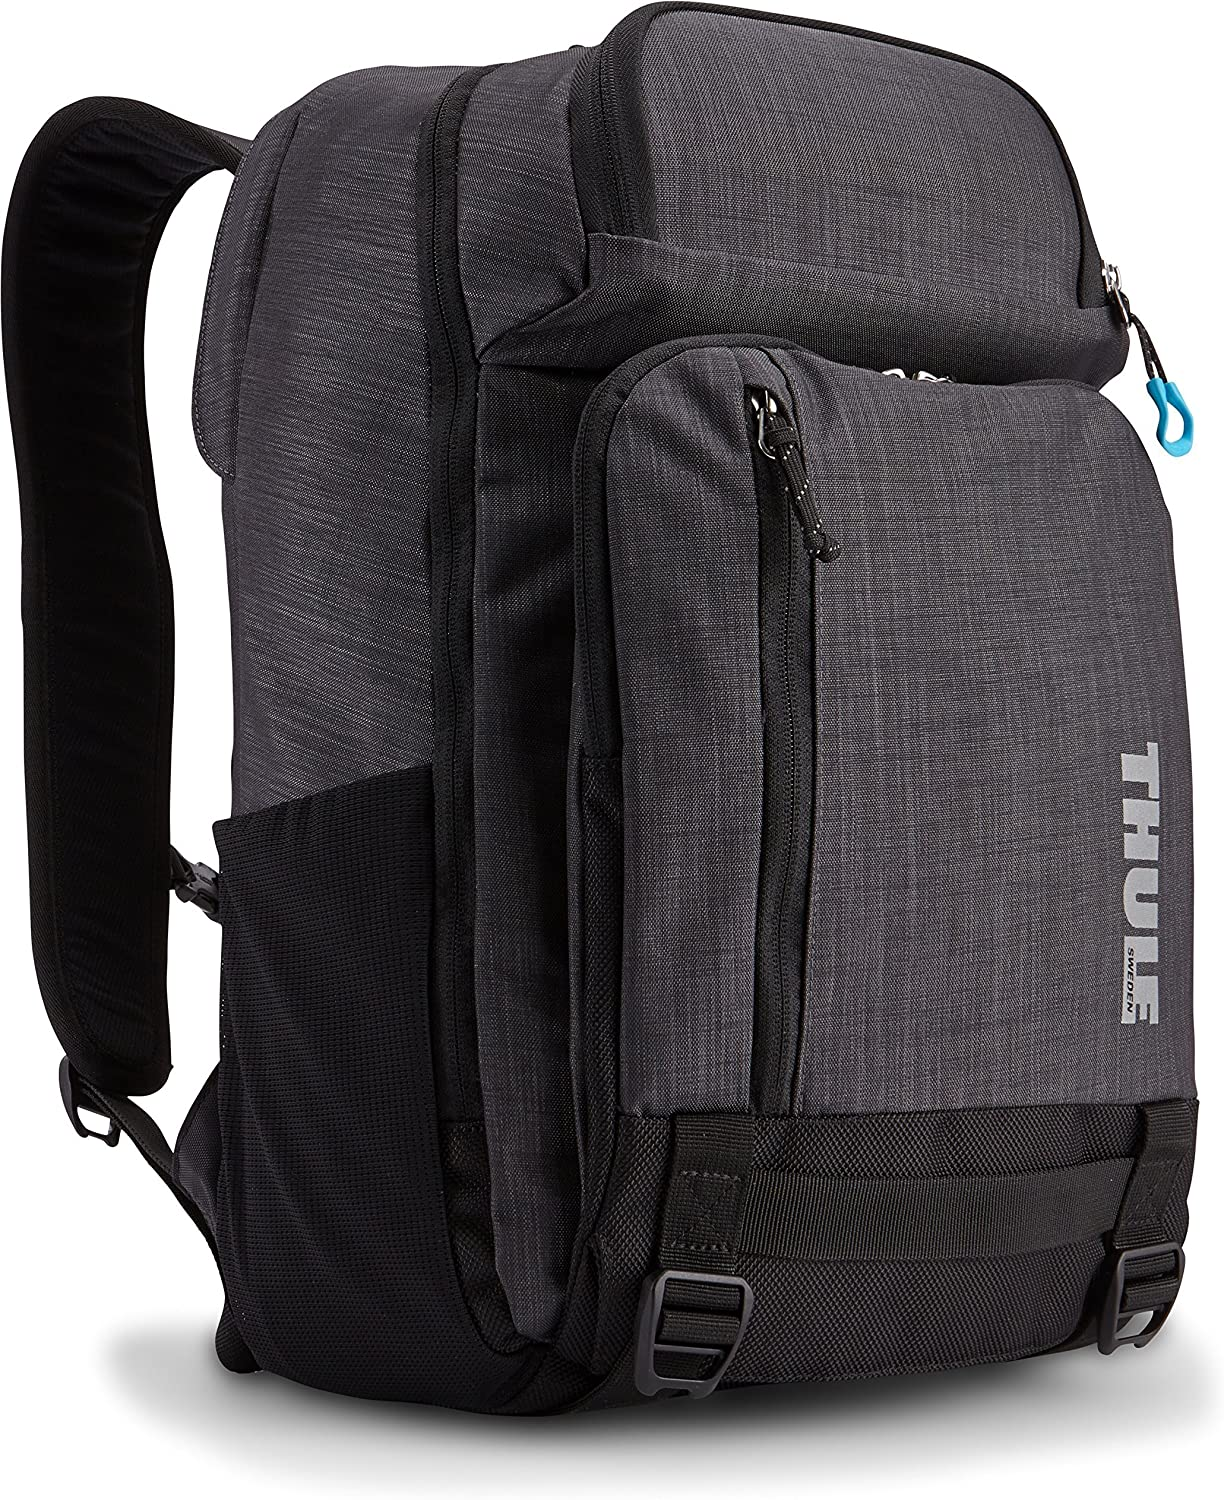 Thule Str van Backpack